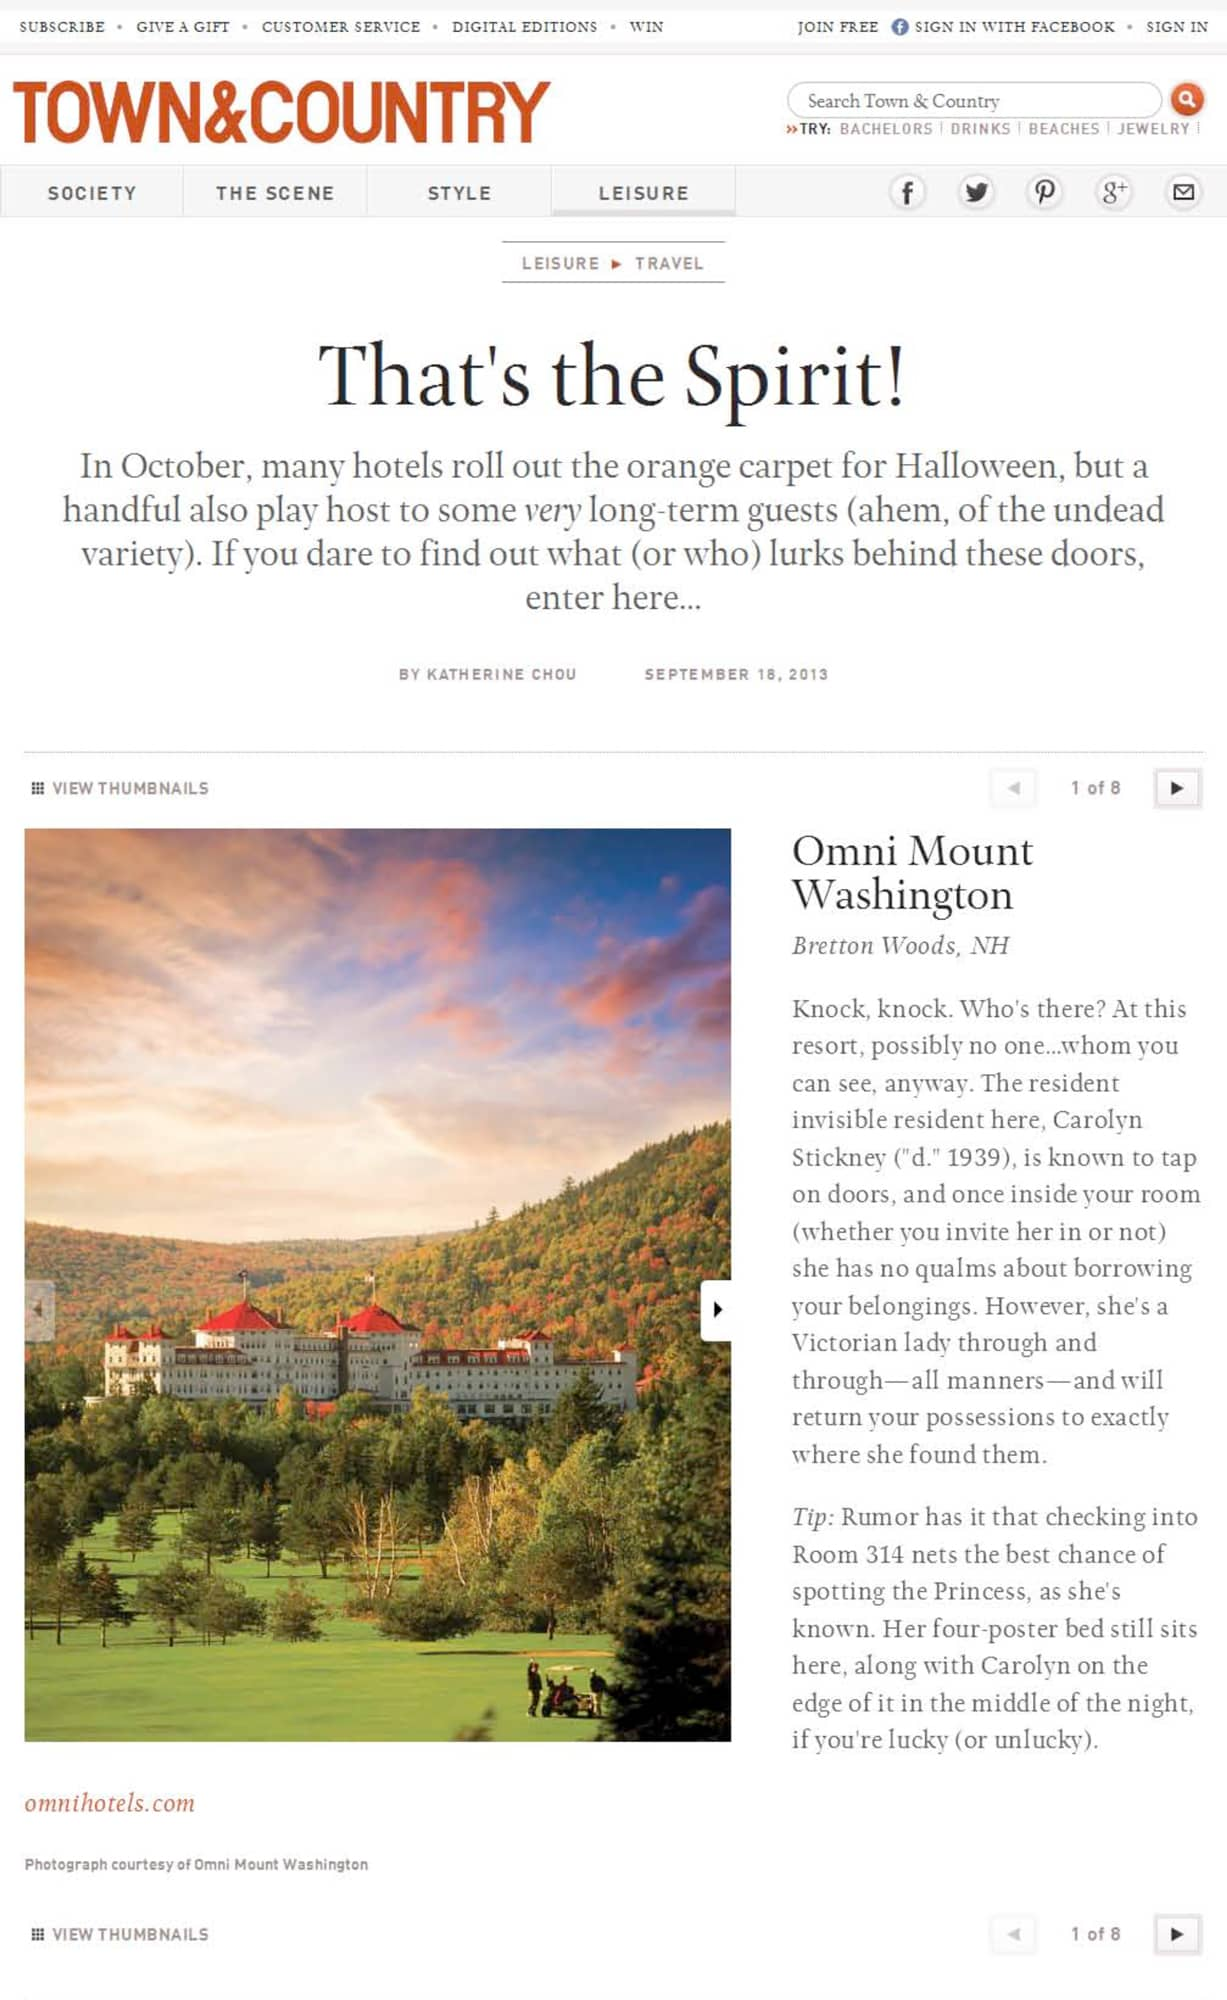 """Town & Country: """"That's the Spirit!"""""""